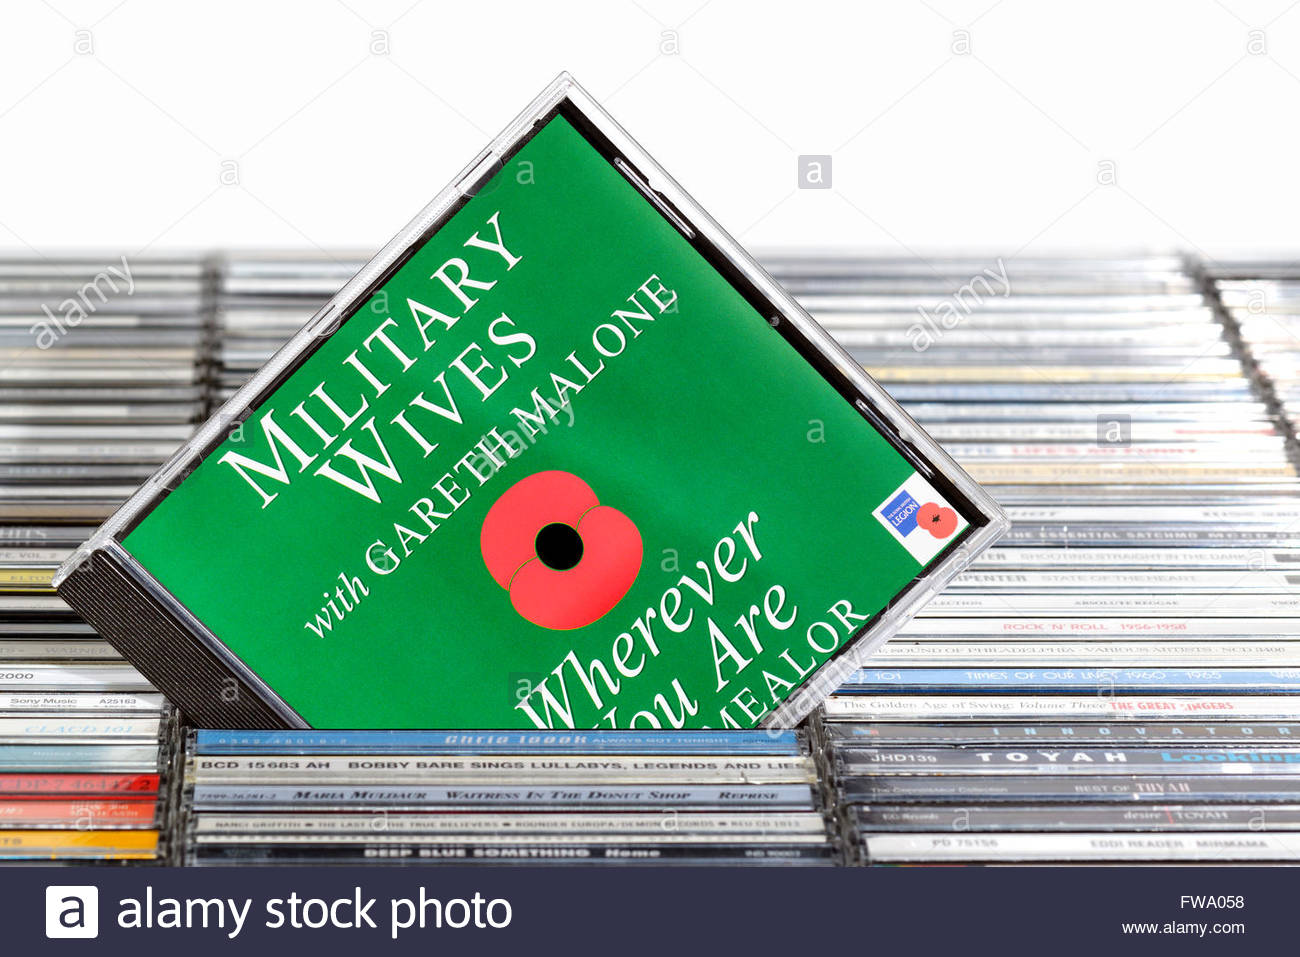 Military Wives 2011 single Wherever You Are, piled music CD cases, Dorset England - Stock Image